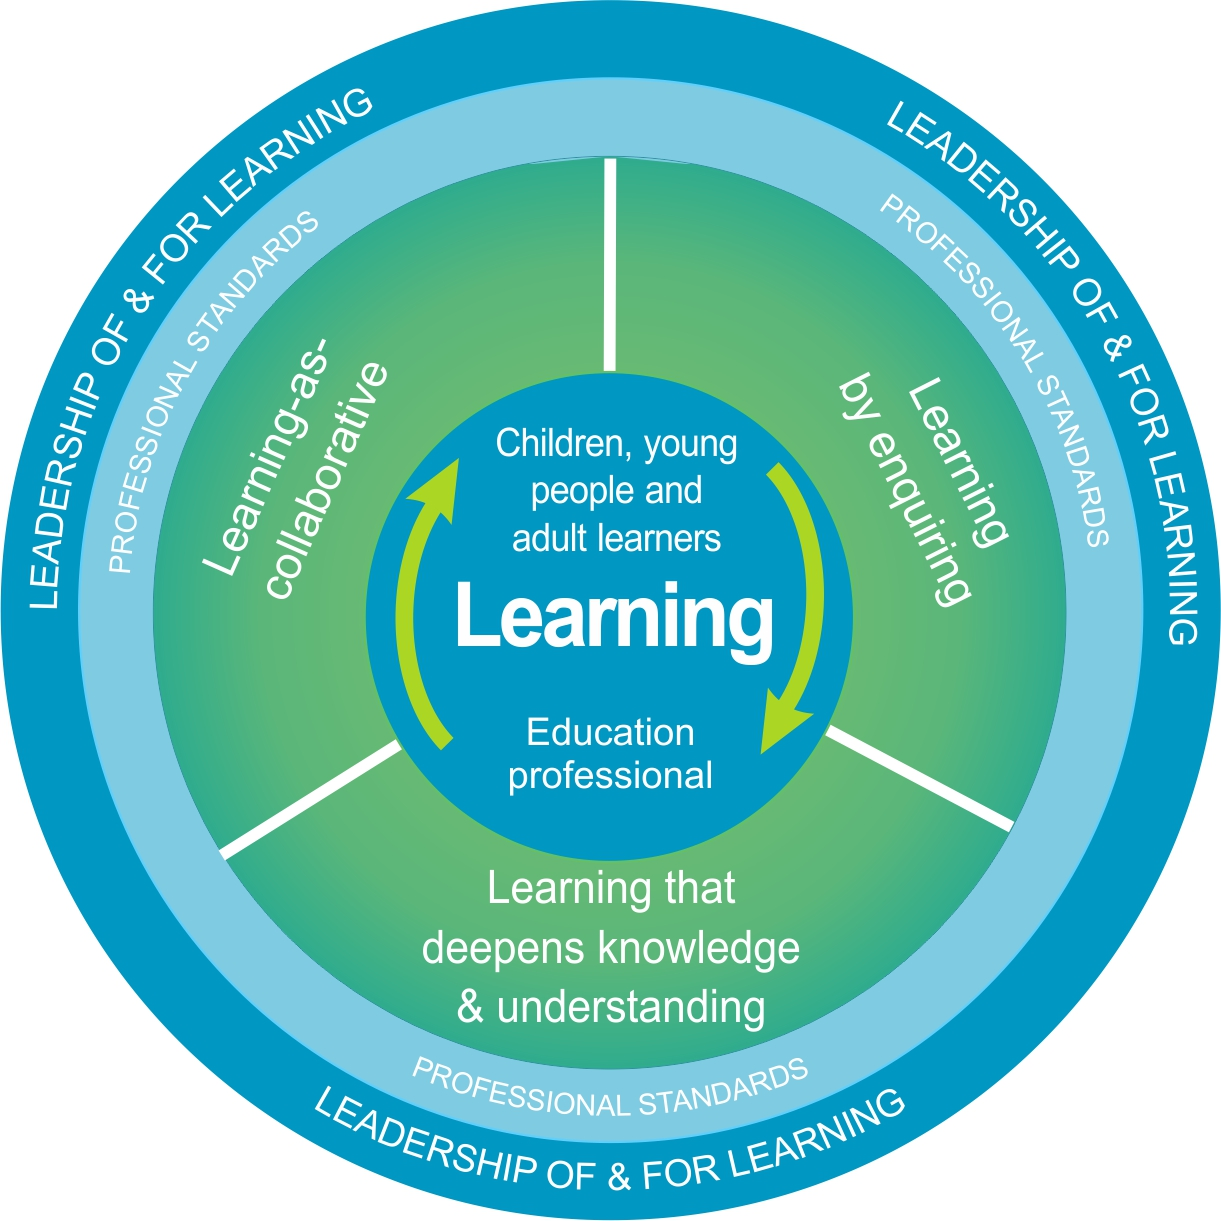 This image is the logo for the  National Model for Professional Learning